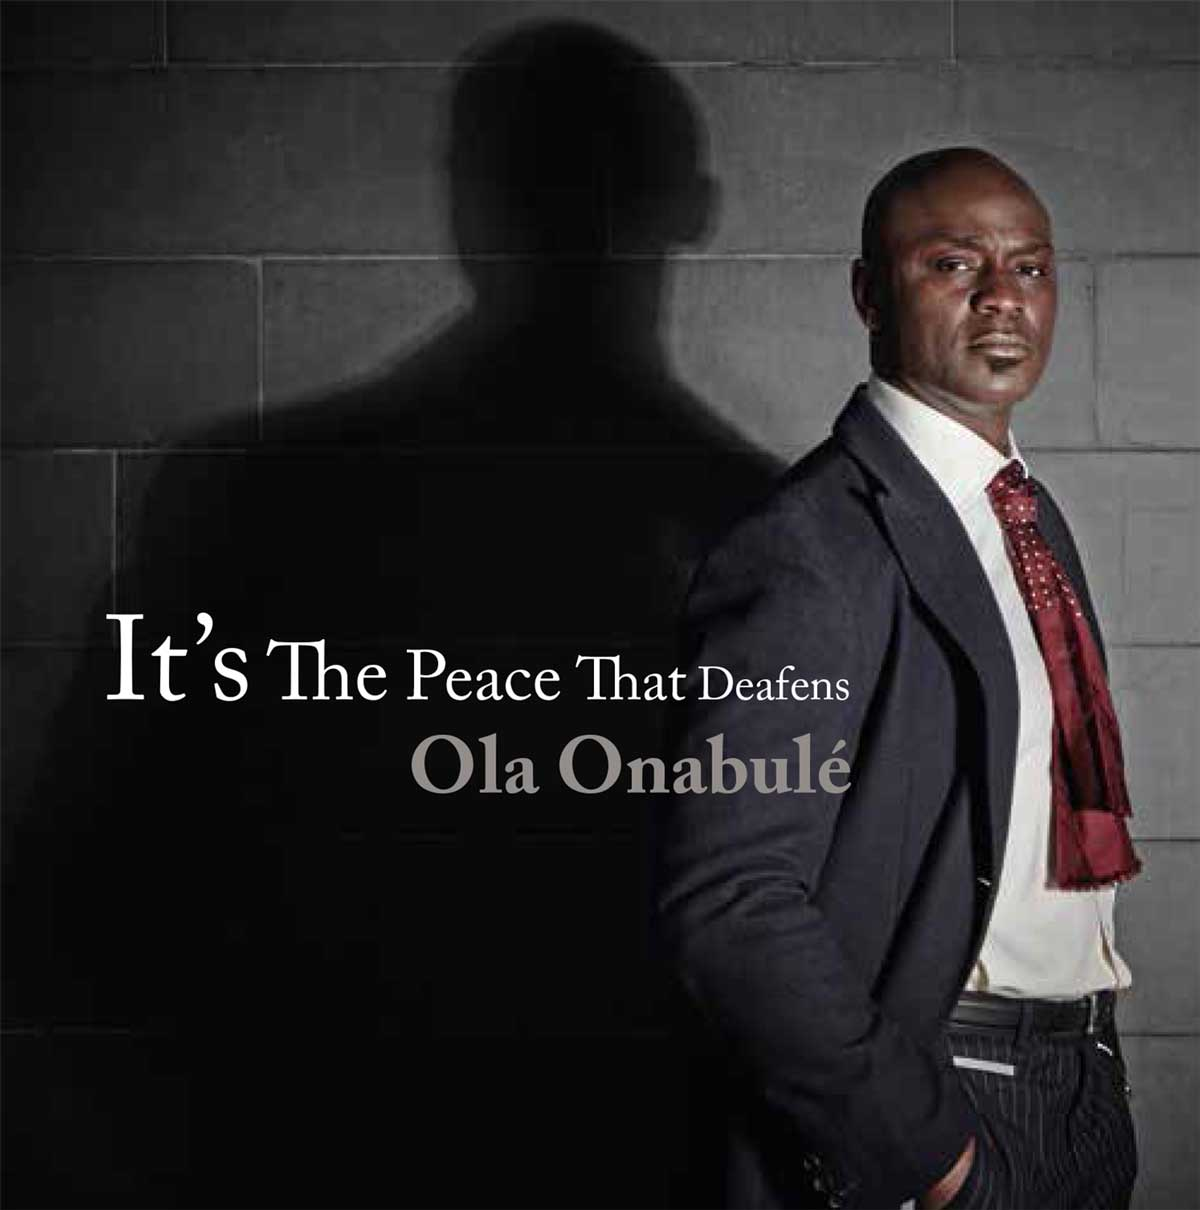 Ola-Onabule-Its-The-Peace-That-Deafens-1200x1200-72dpi1